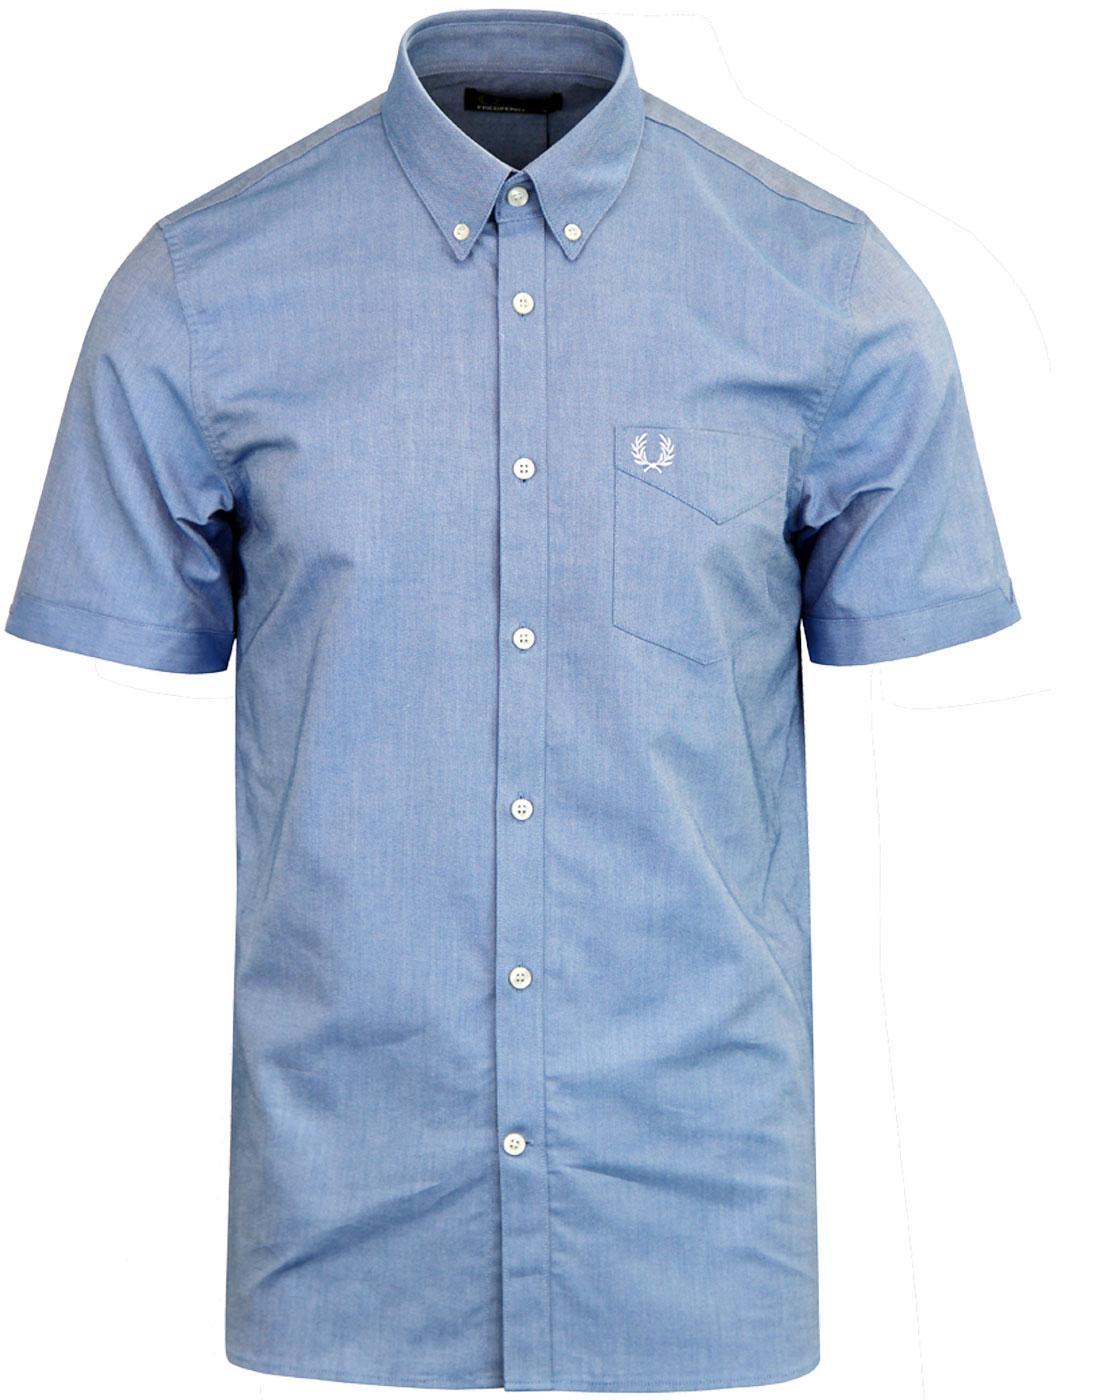 FRED PERRY Men's Classic 60's S/S Oxford Shirt MB